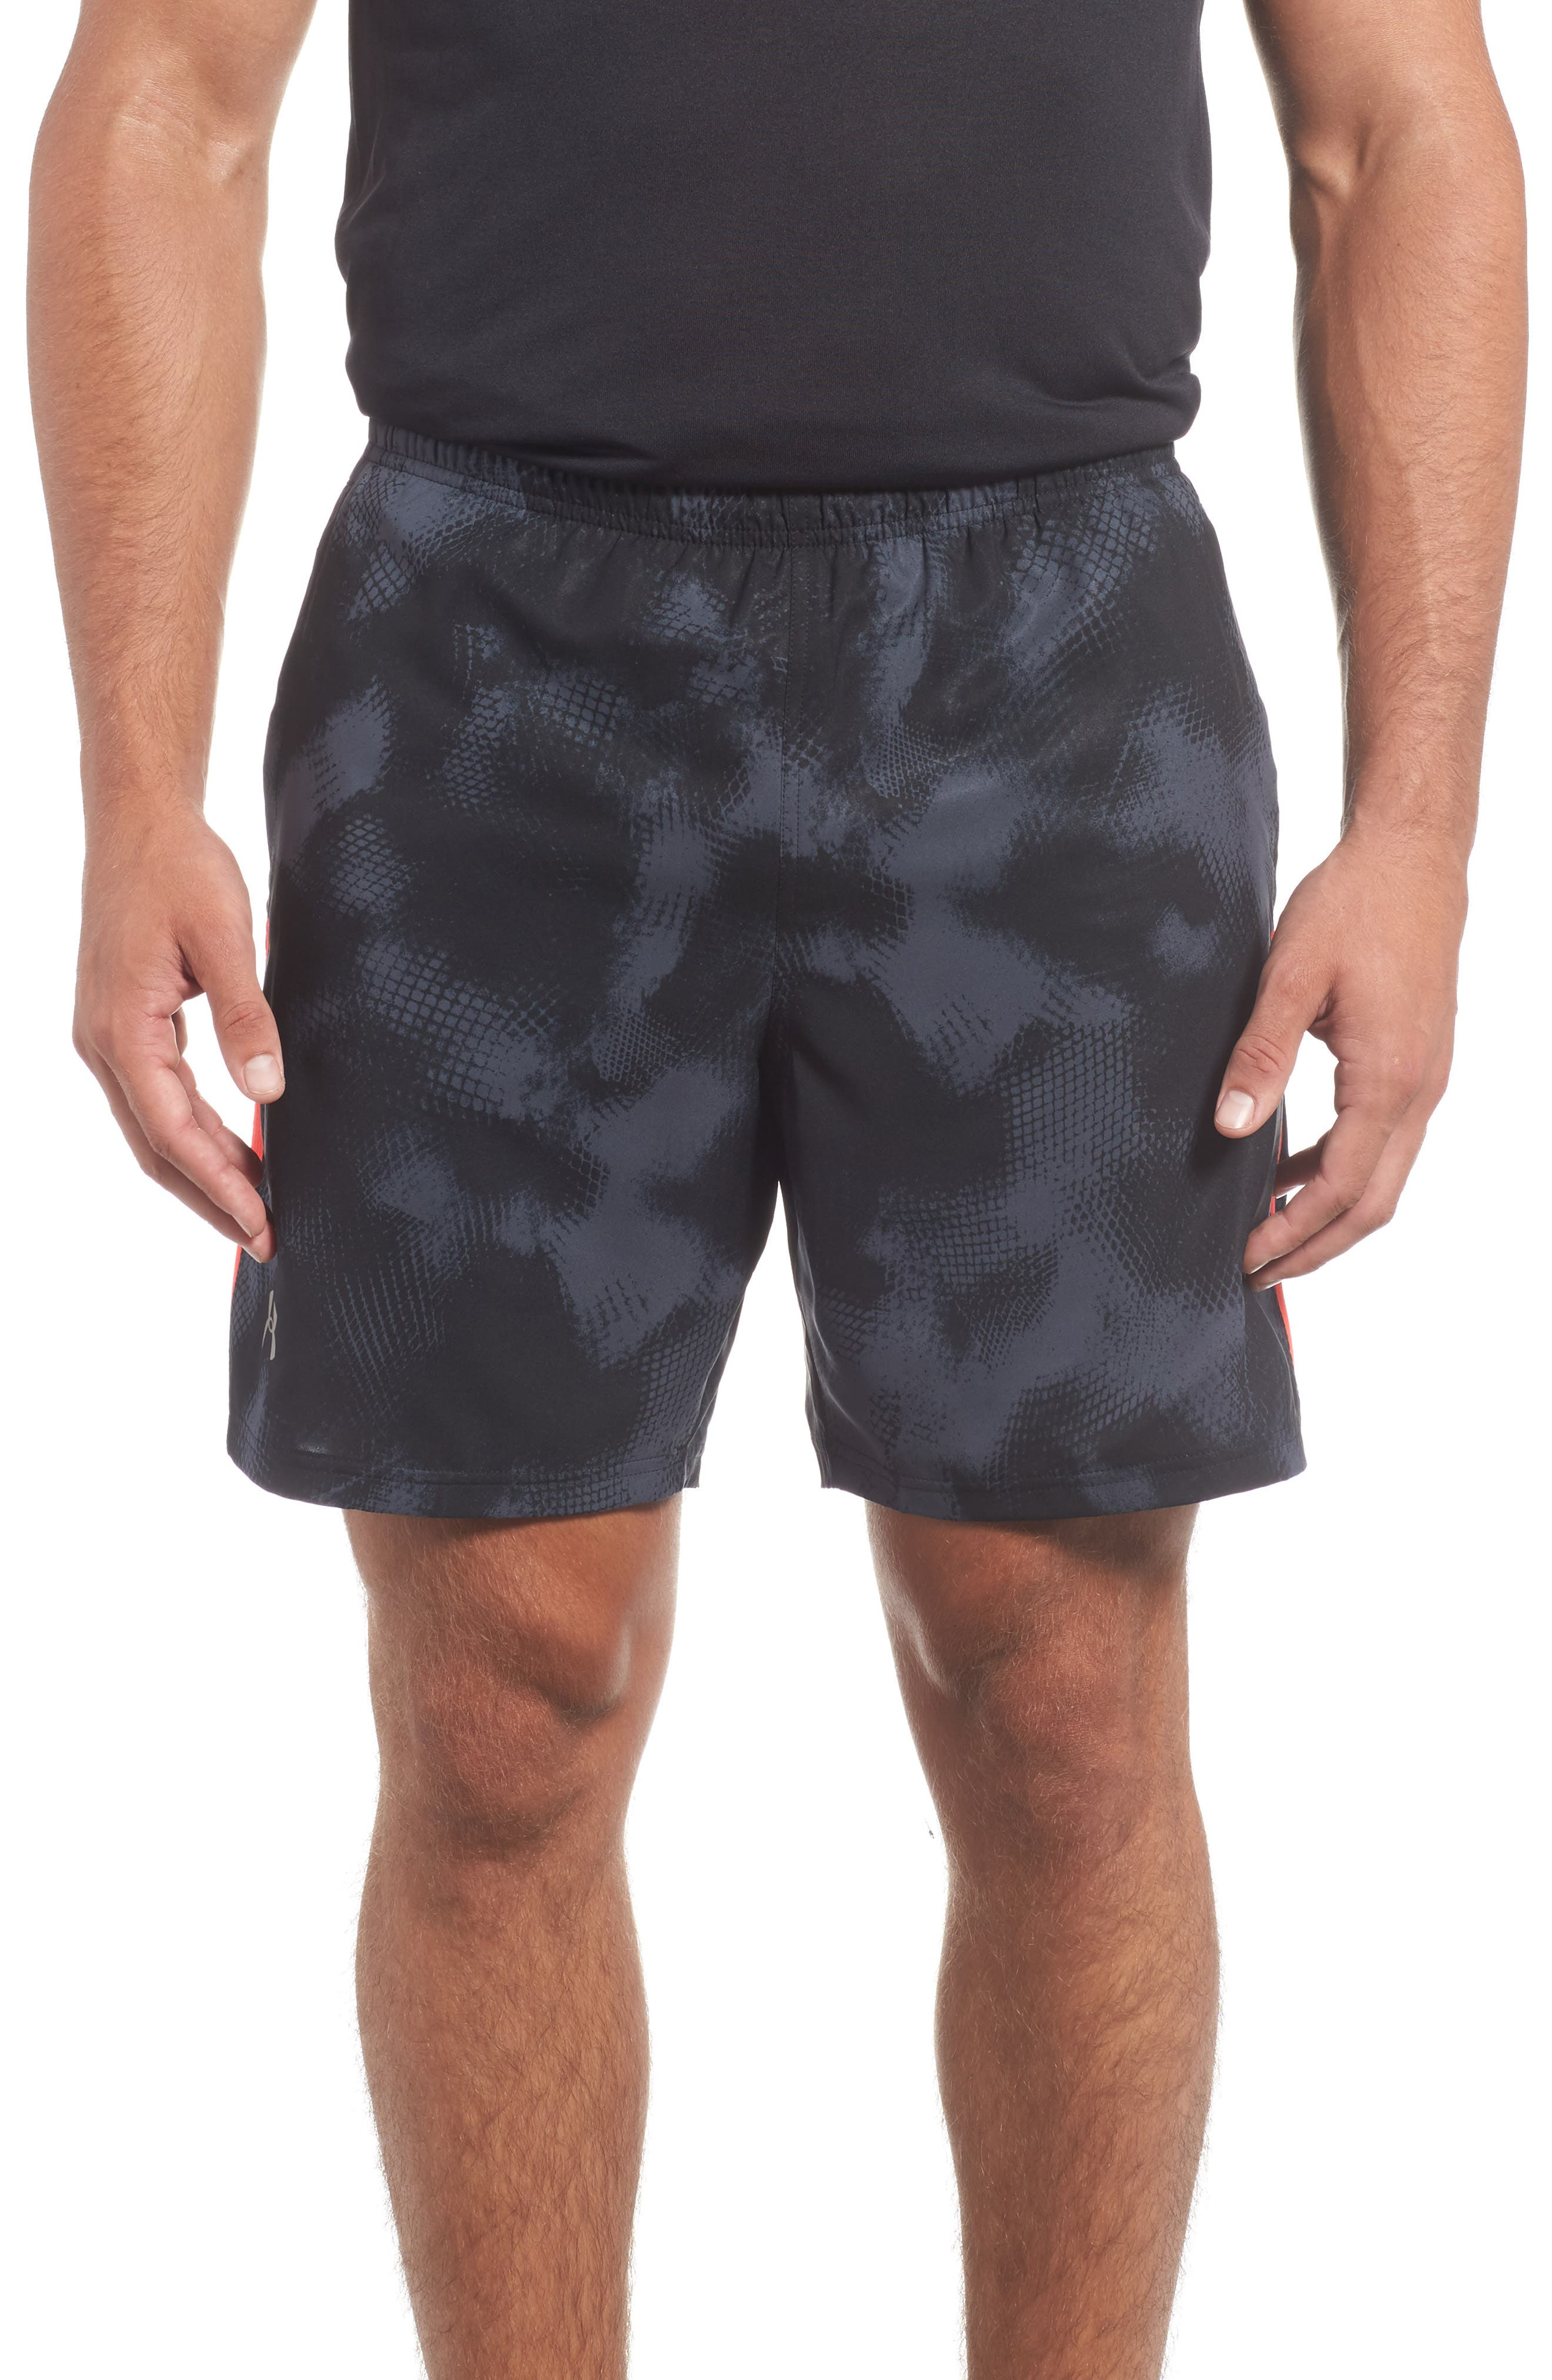 Under Armour Launch Running Shorts